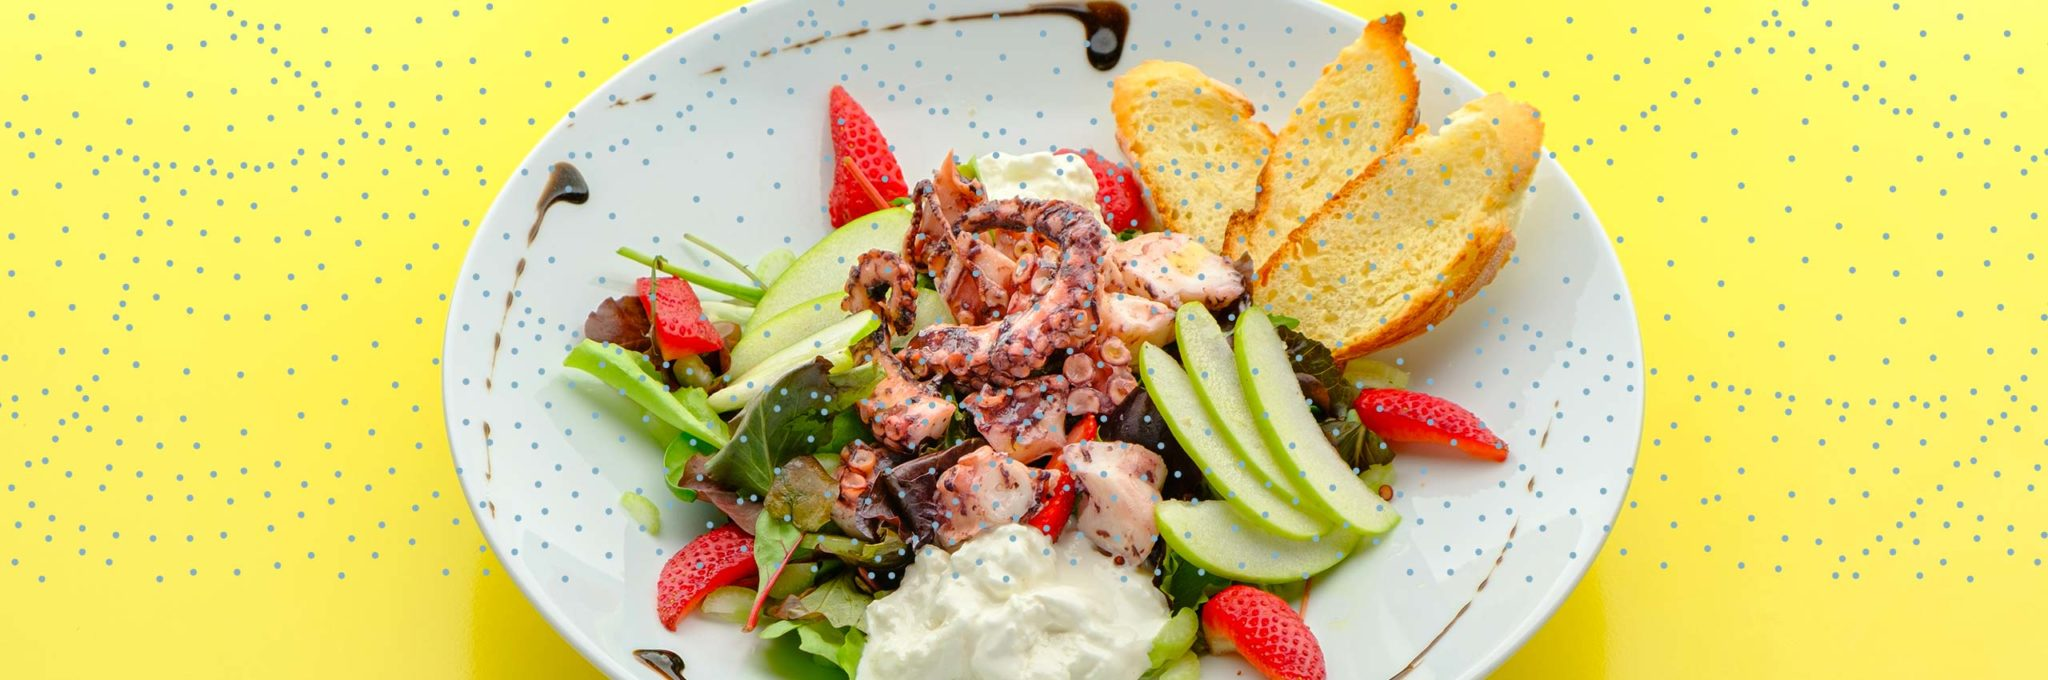 Salads and steamed seafood